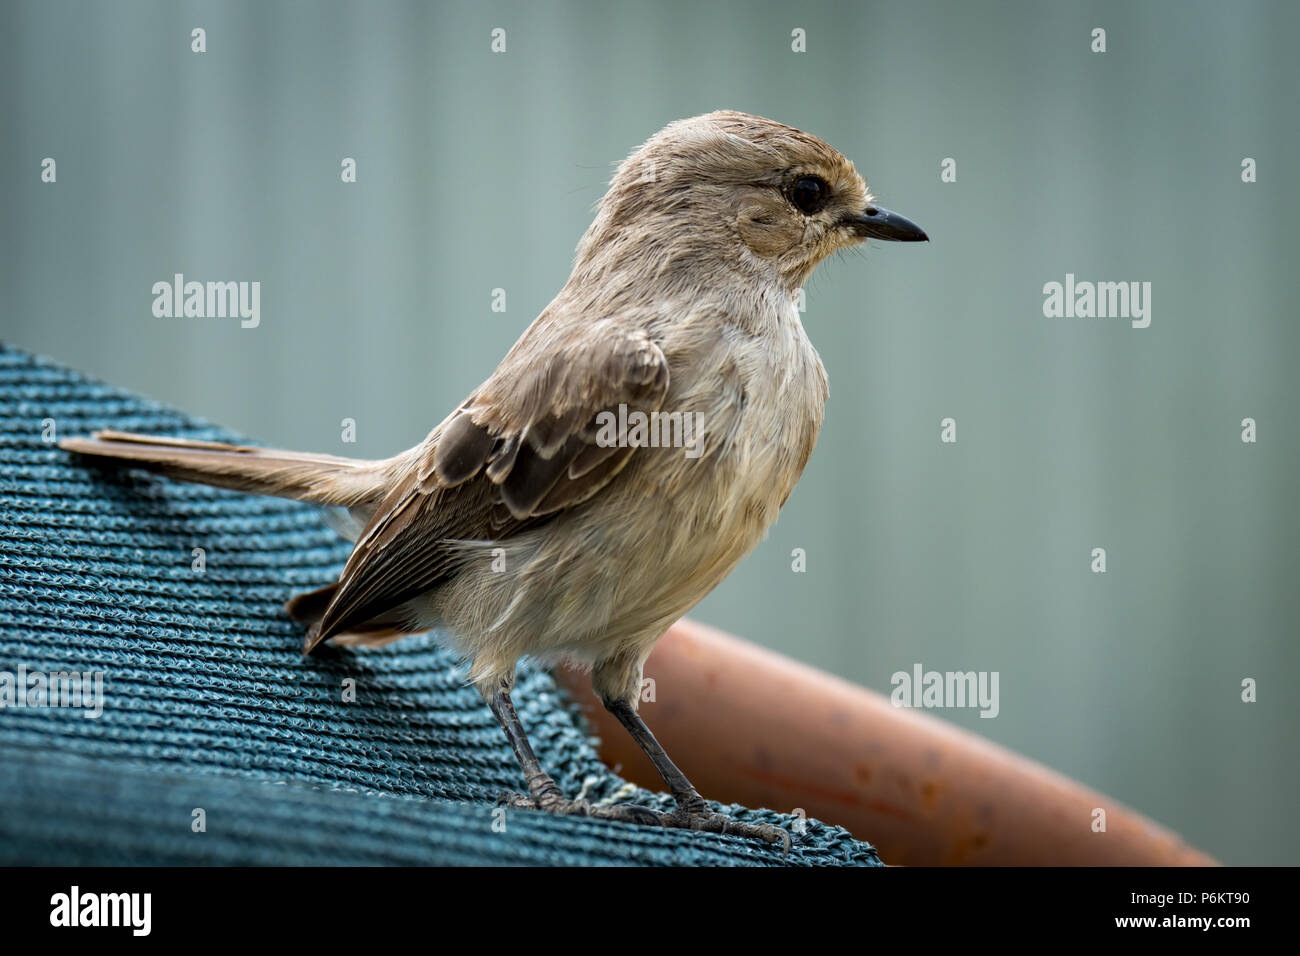 Pale flycatcher perched on sunshade facing right - Stock Image